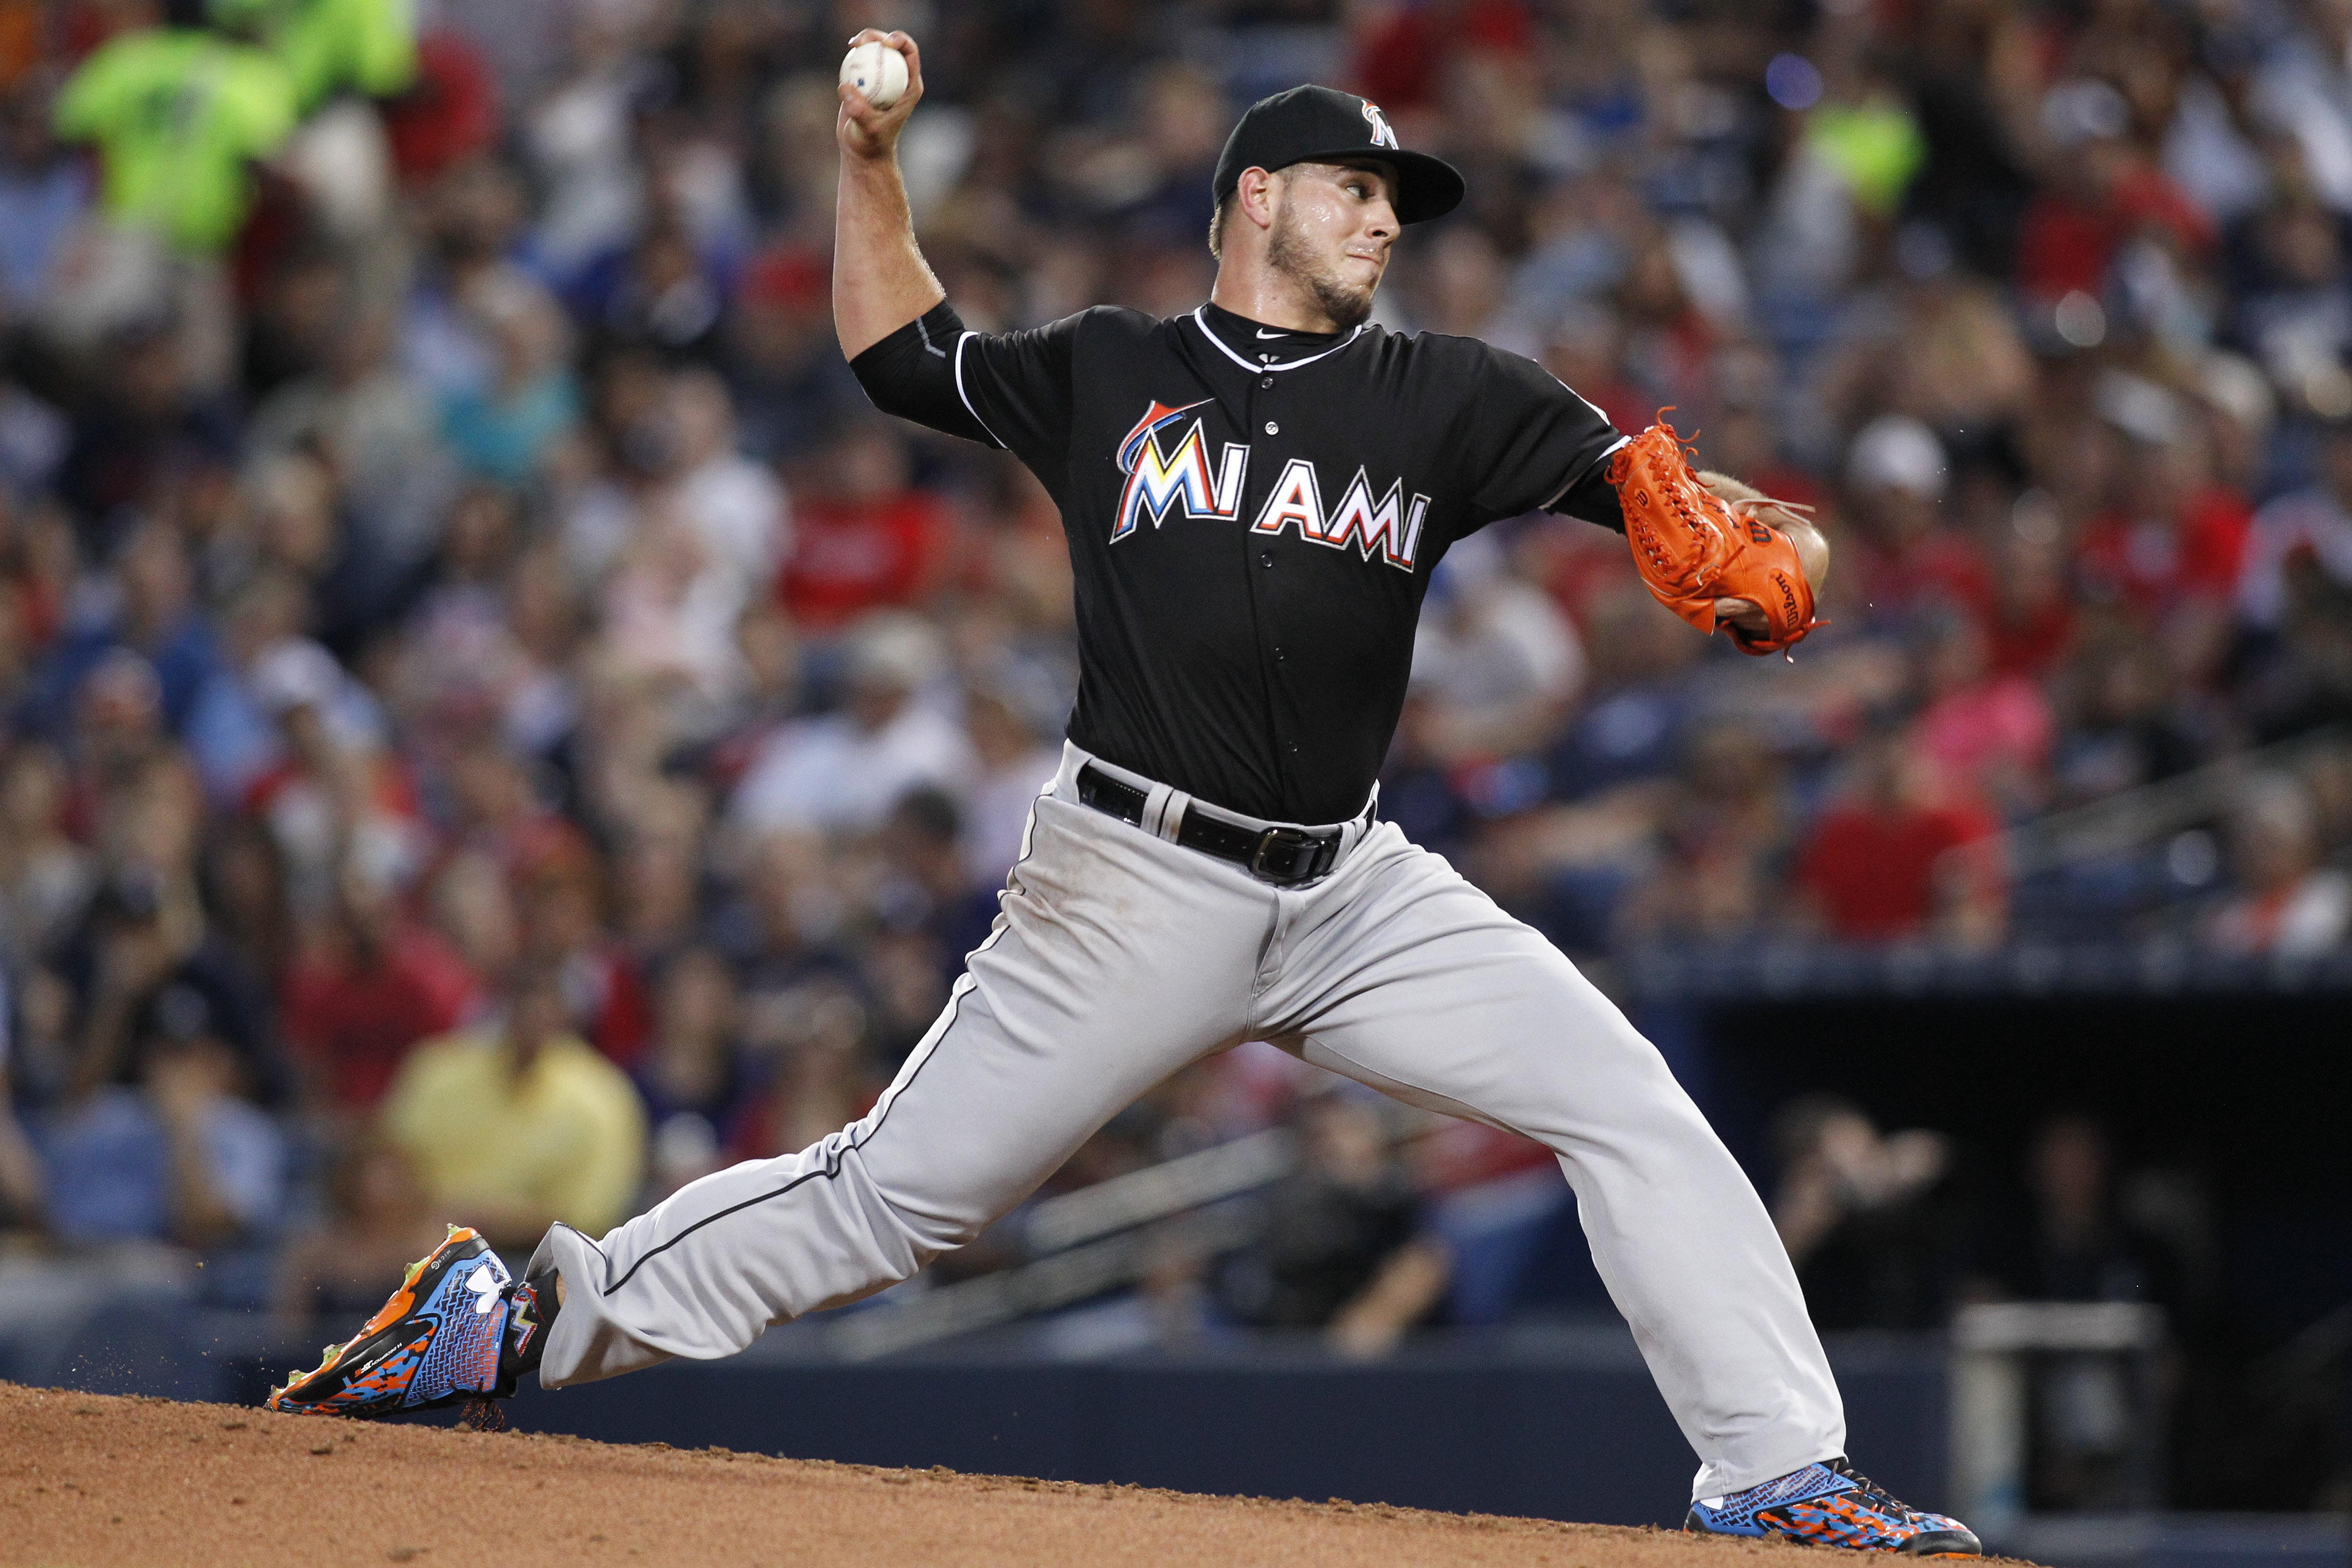 Miami Marlins starting pitcher Jose Fernandez throws during the fourth inning of a baseball game against the Atlanta Braves, Friday, Aug. 7, 2015, in Atlanta. (AP Photo/Brett Davis)